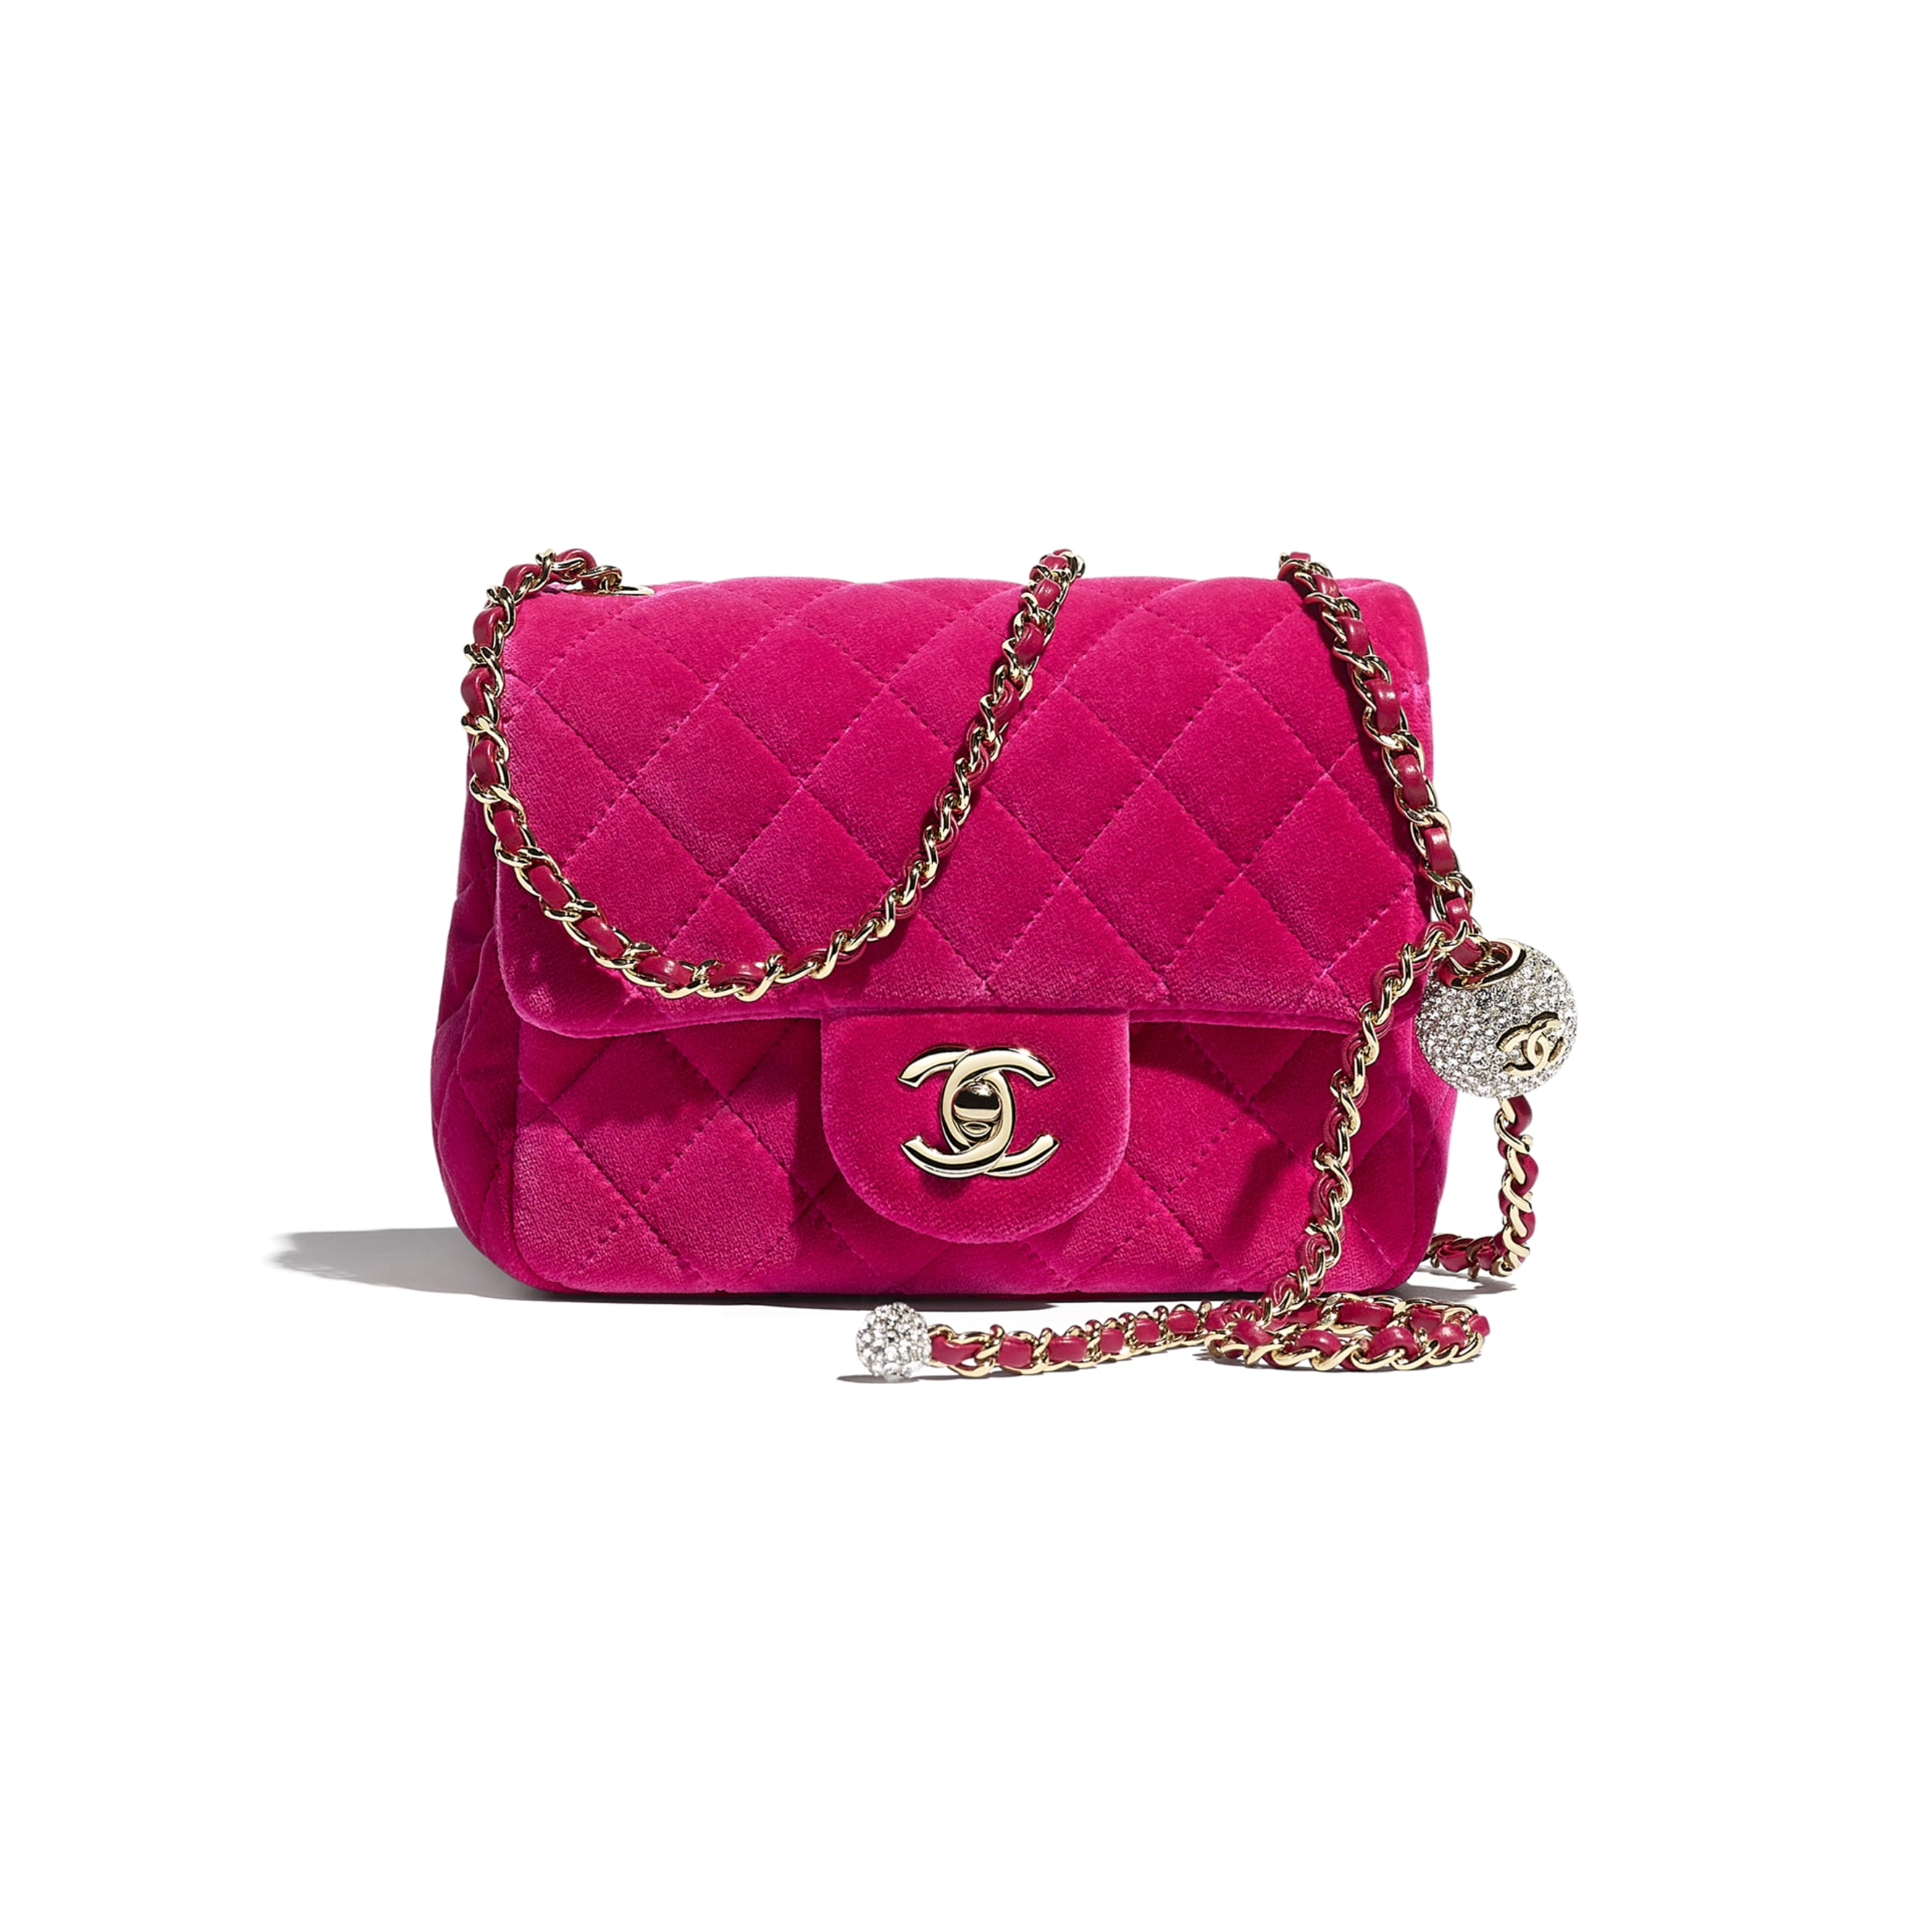 Flap Bag - Fuchsia - Velvet, Diamanté & Silver-Tone Metal - CHANEL - Default view - see standard sized version